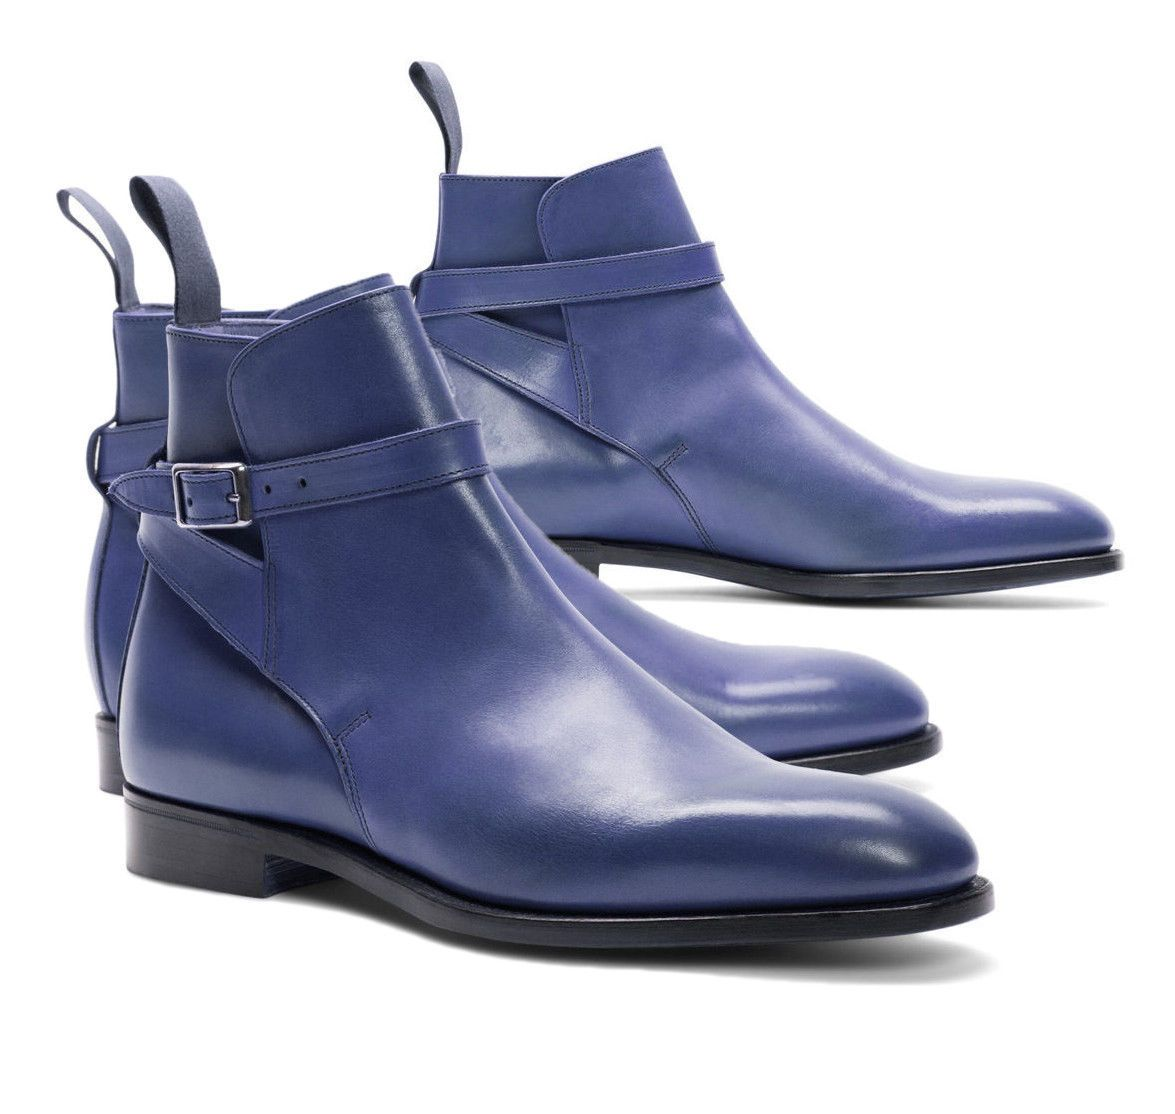 MEN HAND CRAFTED JODHPURS LEATHER BOOTS ANKLE HIGH DRESS FORMAL WEDDING BOOTS